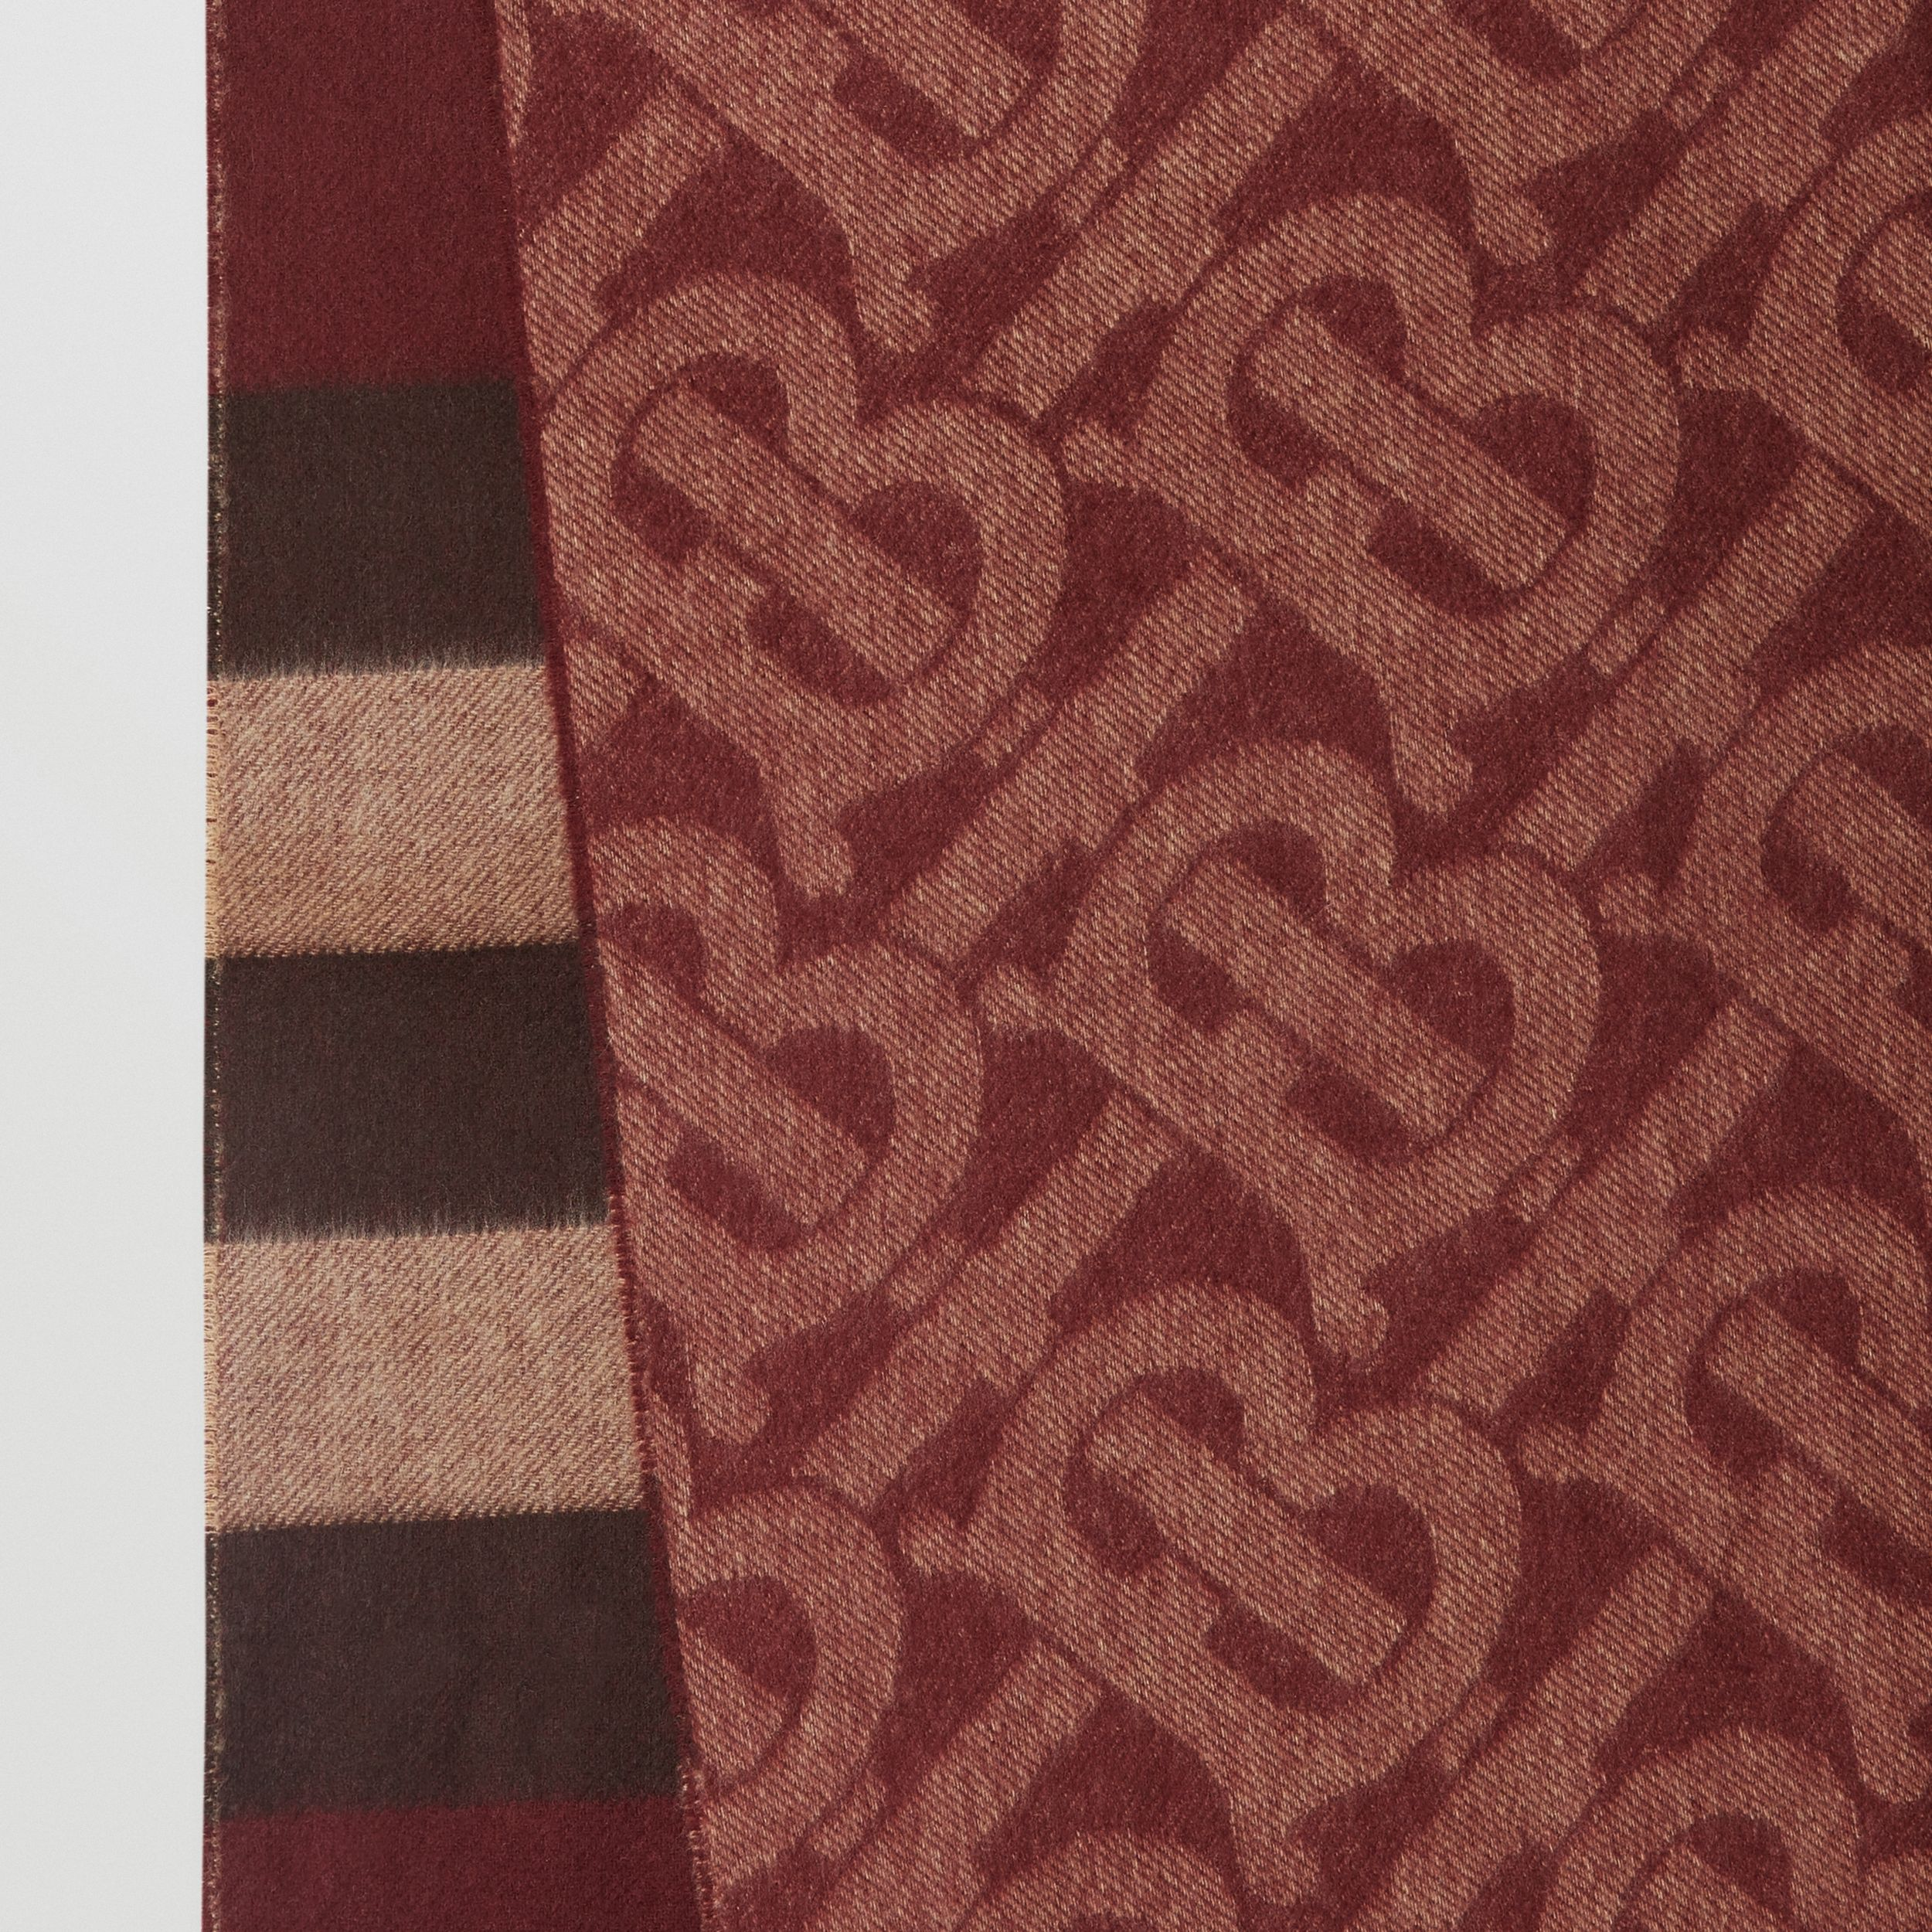 Reversible Check and Monogram Cashmere Scarf in Burgundy | Burberry - 2